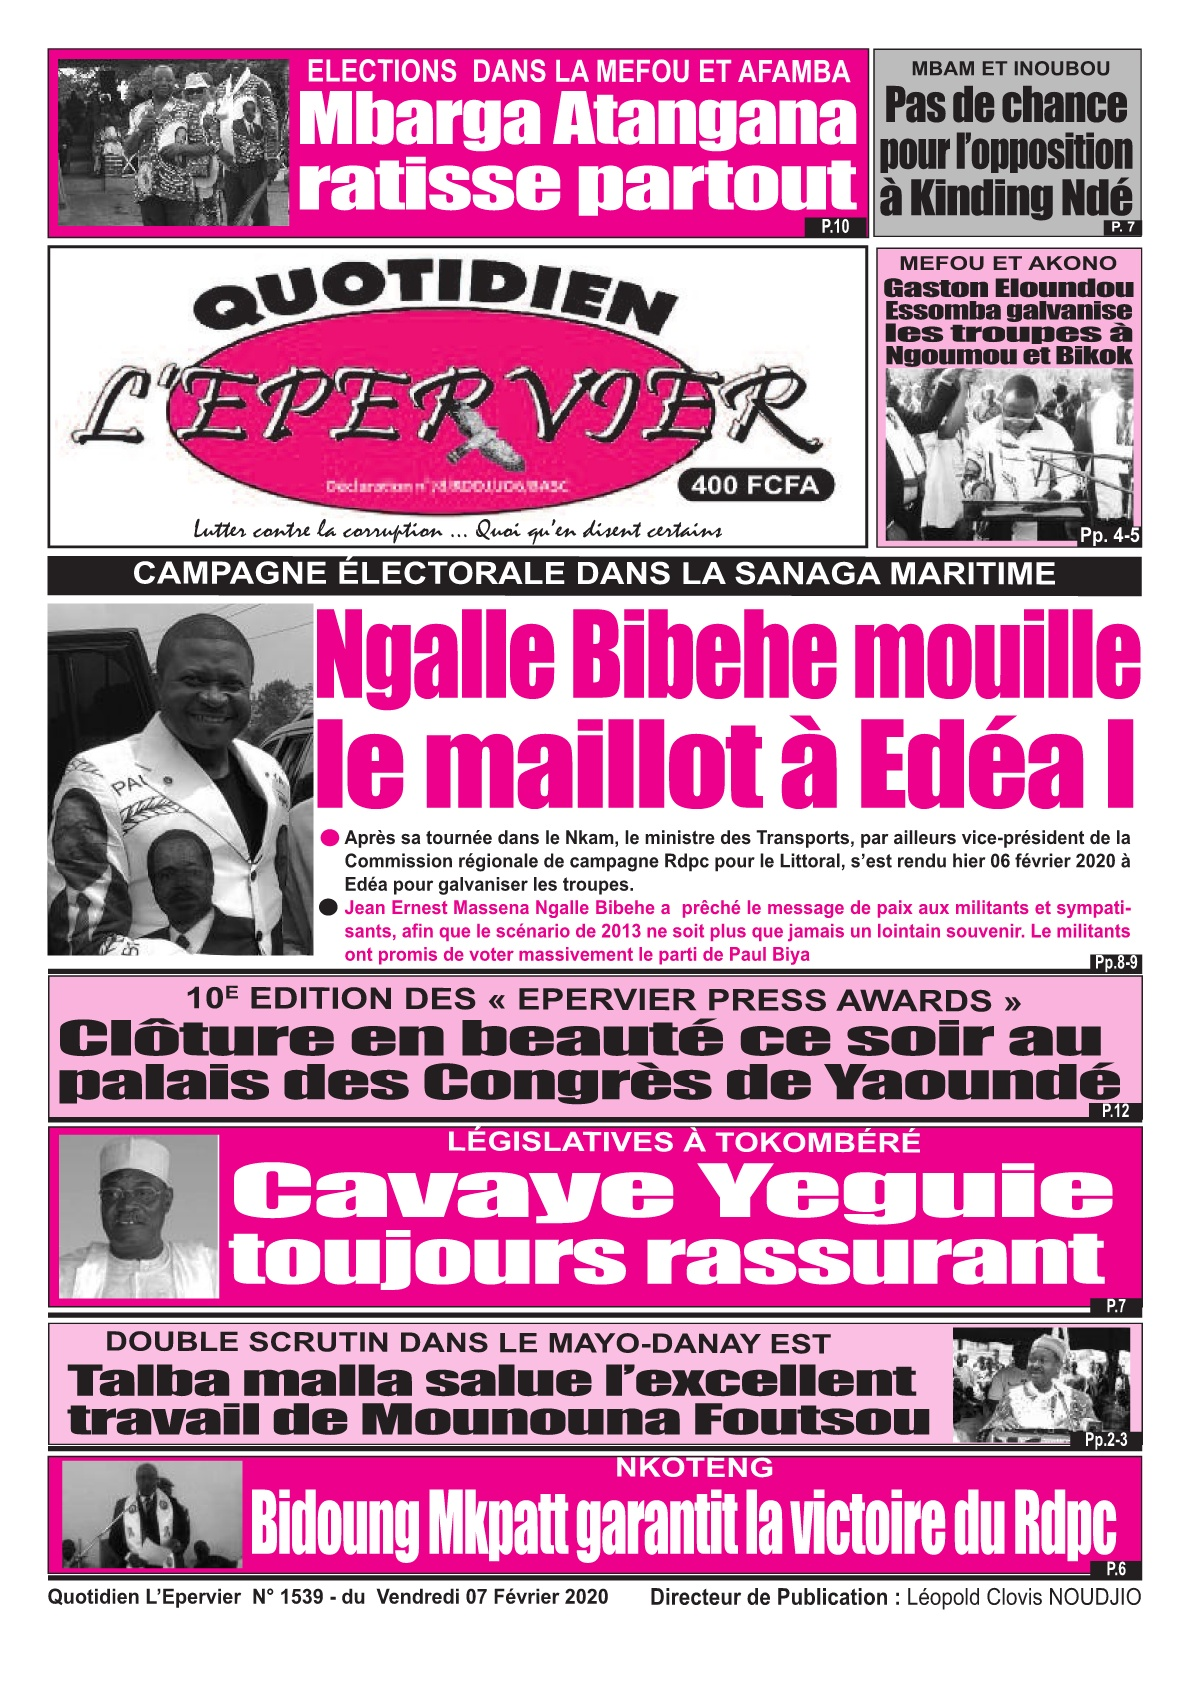 L'Epervier - 07/02/2020